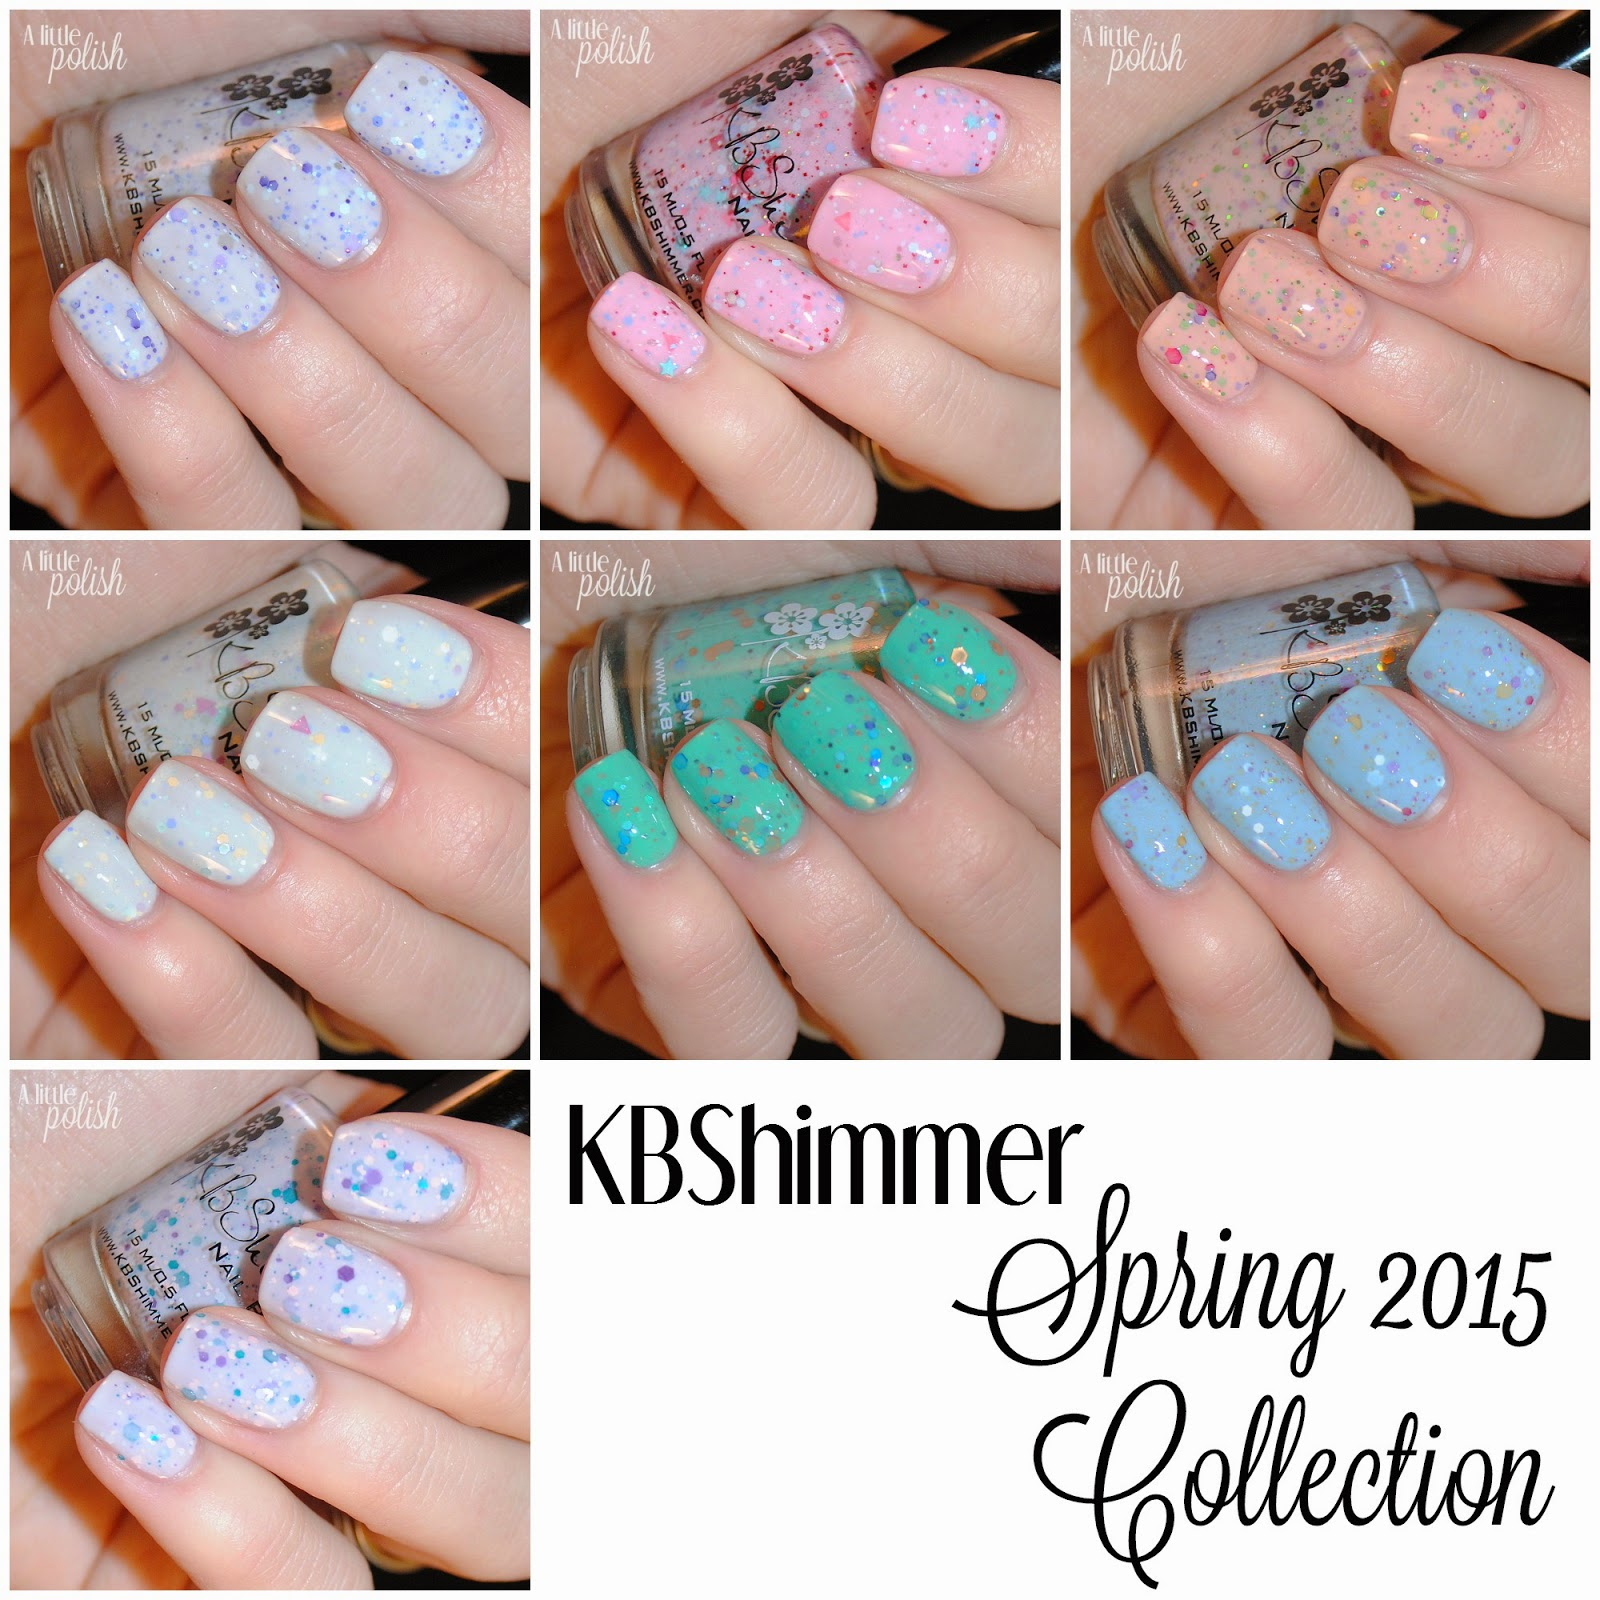 a little polish kbshimmer spring 2015 collection picture heavy